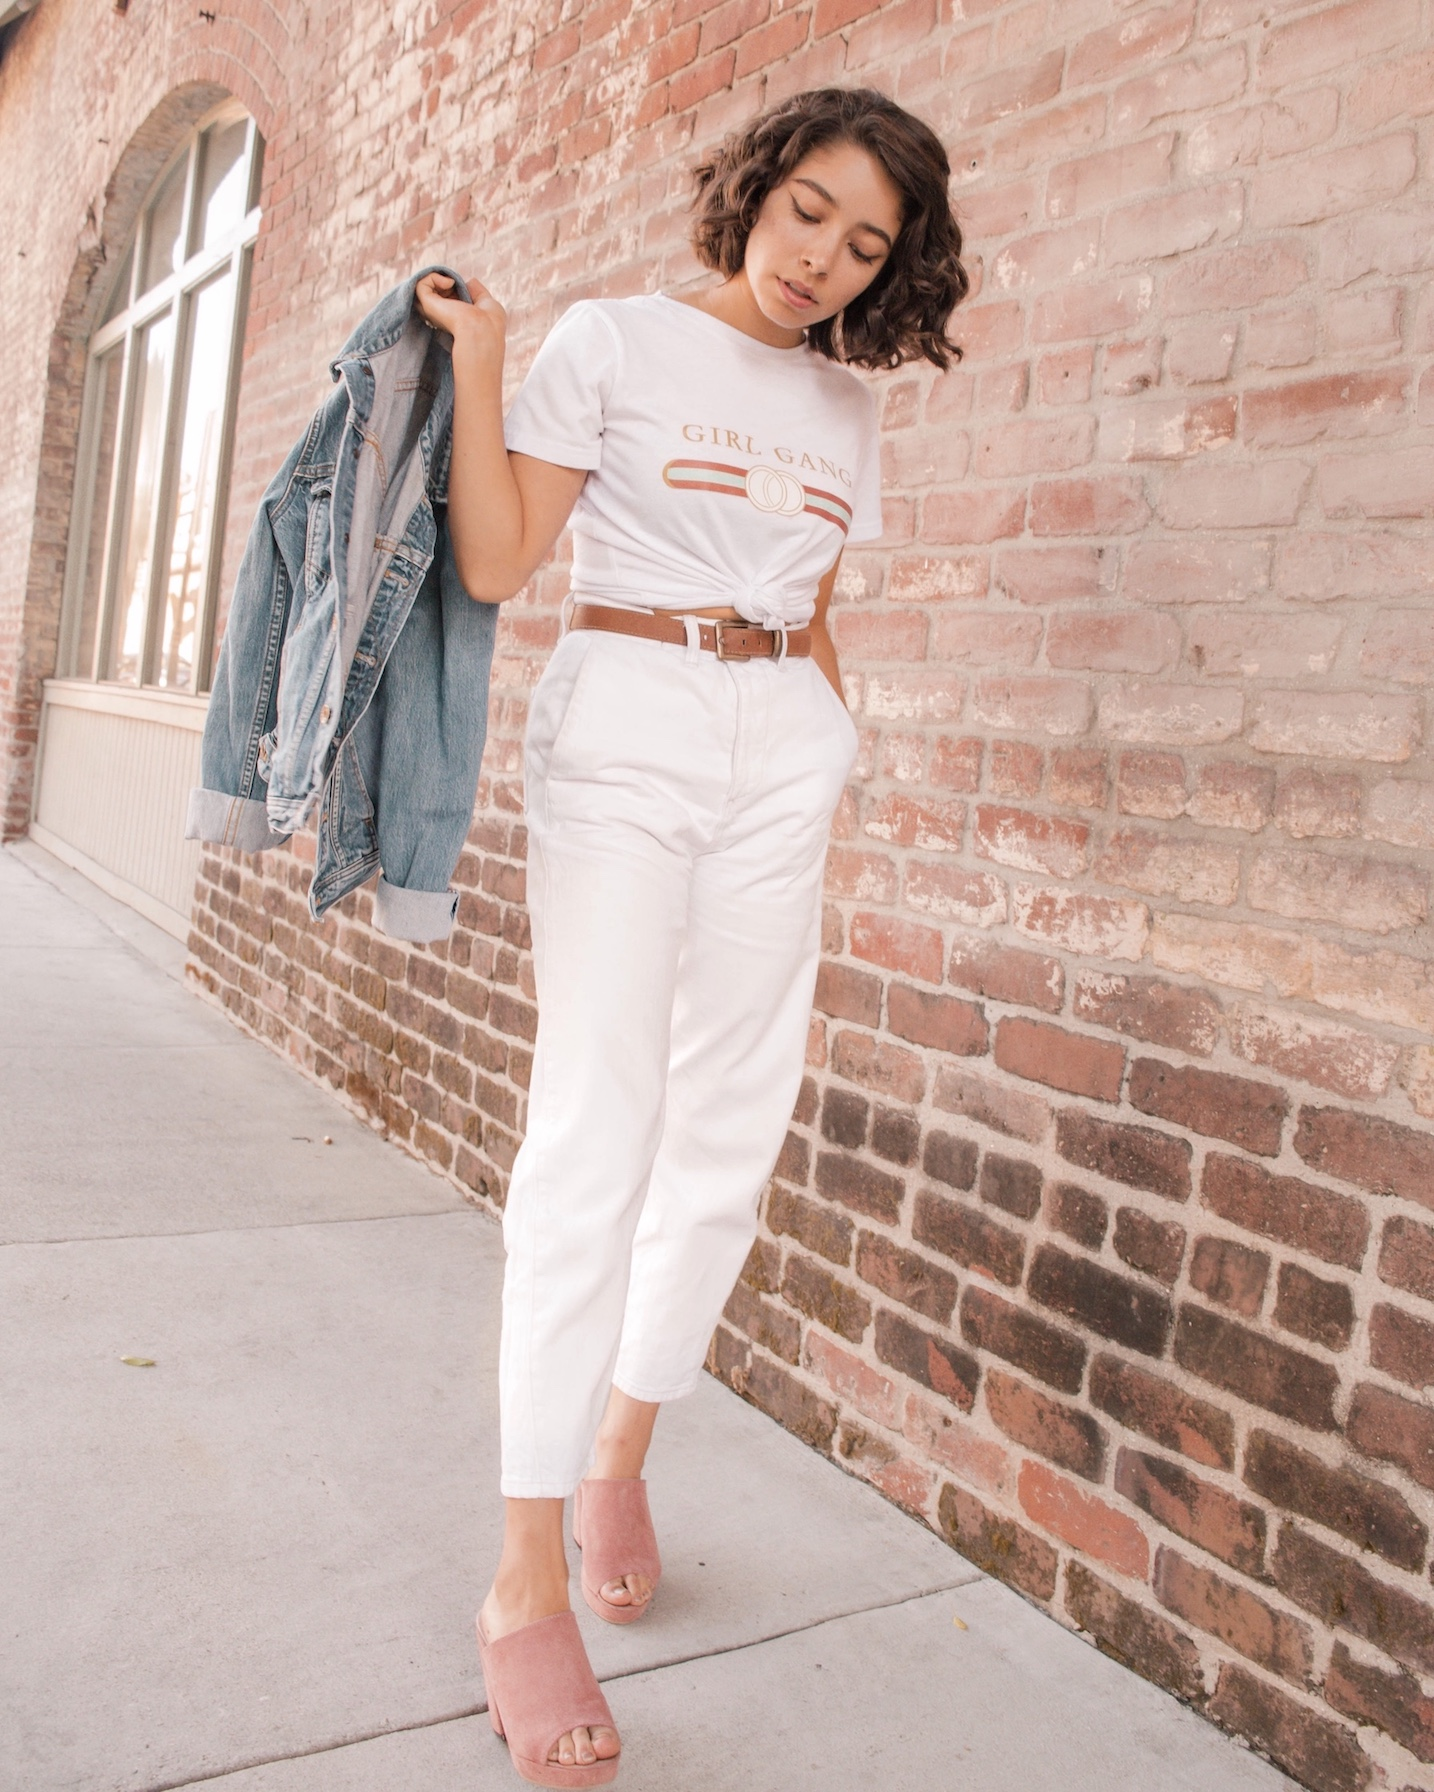 All white outfit with denim jacket // A Week Of Self-Expressive Outfits With Aja Duran From Aja With Love on The Good Trade